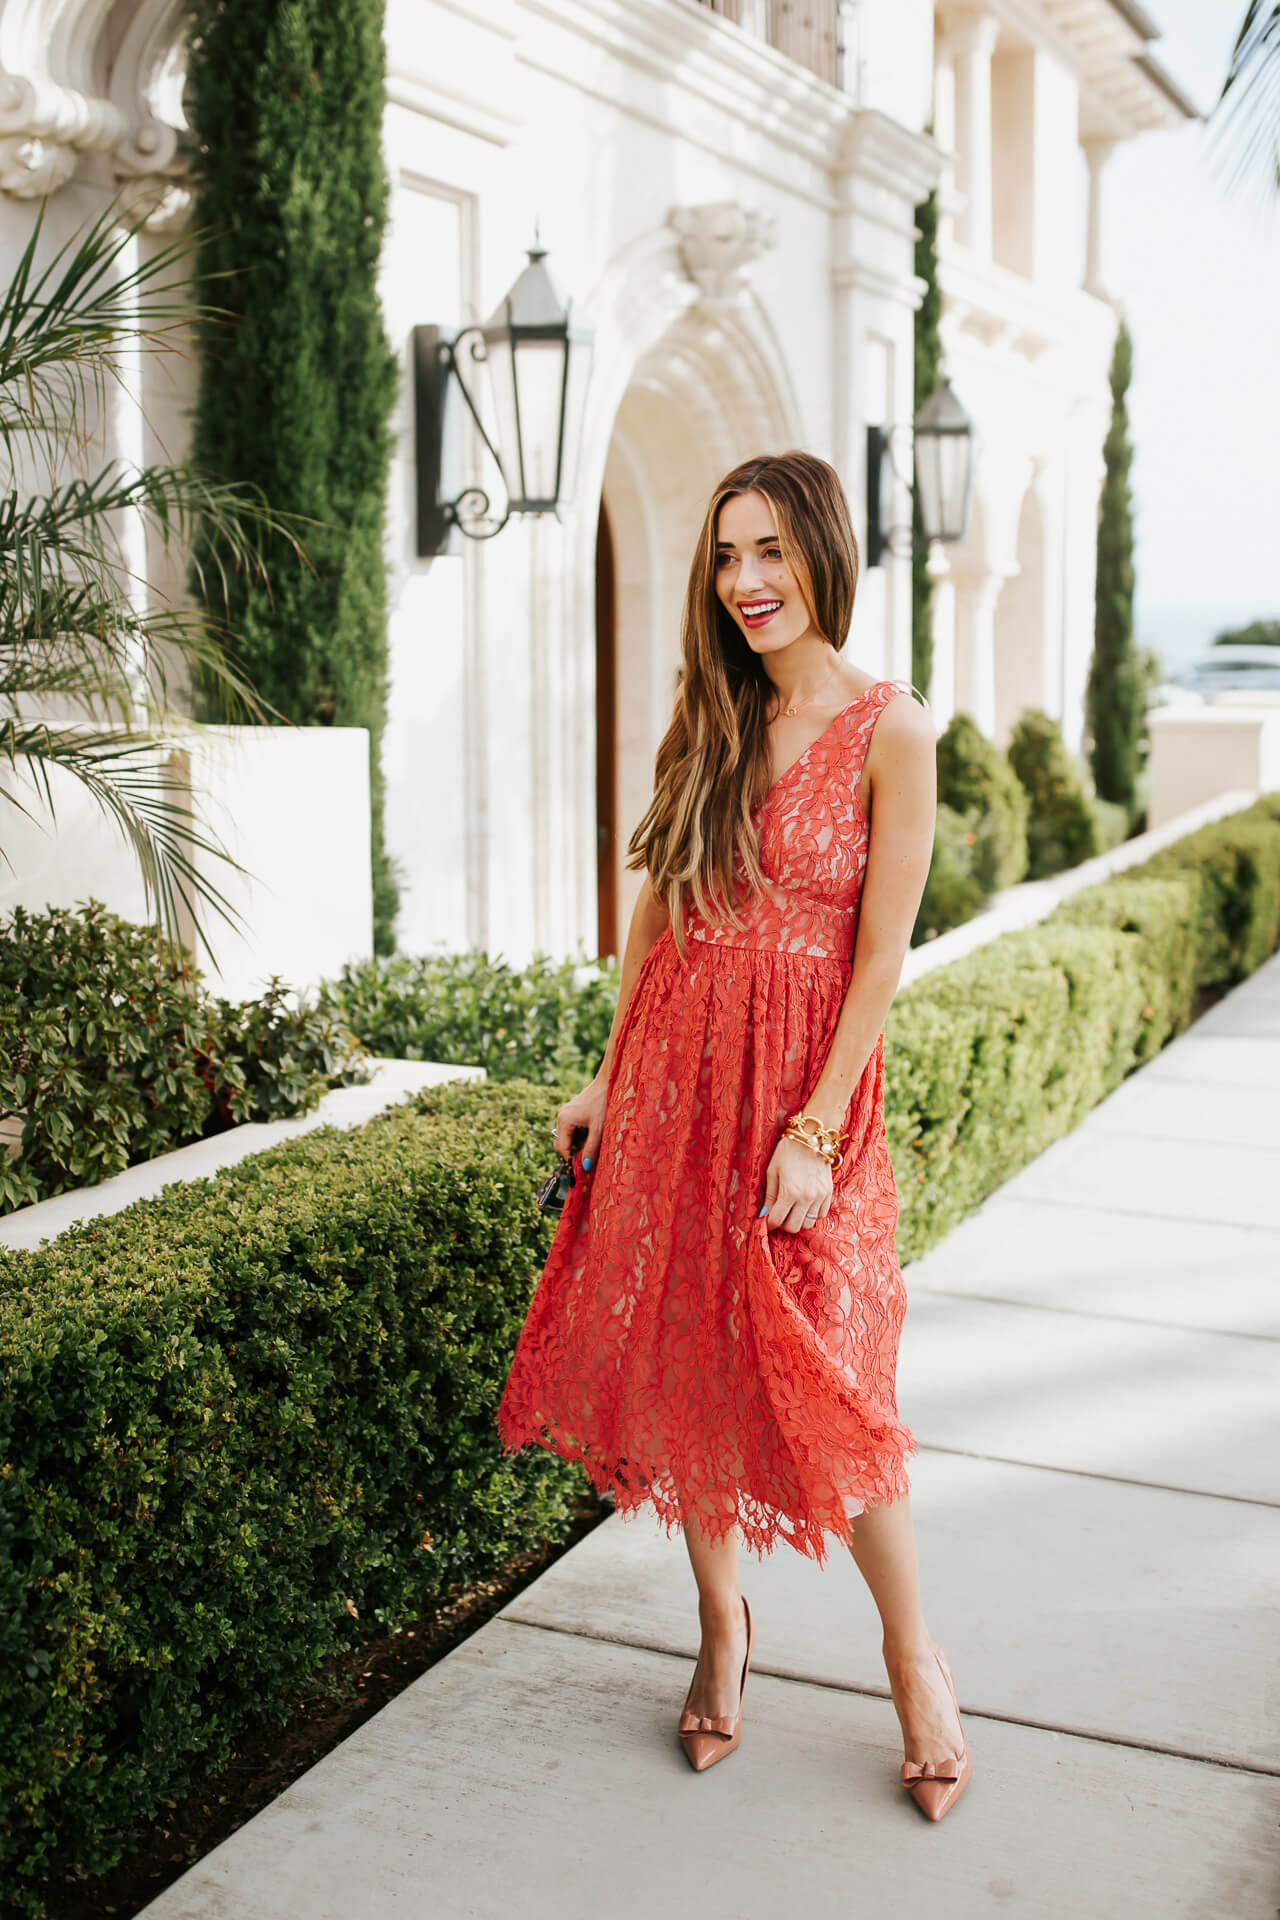 The prettiest red lace dress that is the perfect wedding outfit inspiration. | M Loves M @marmar